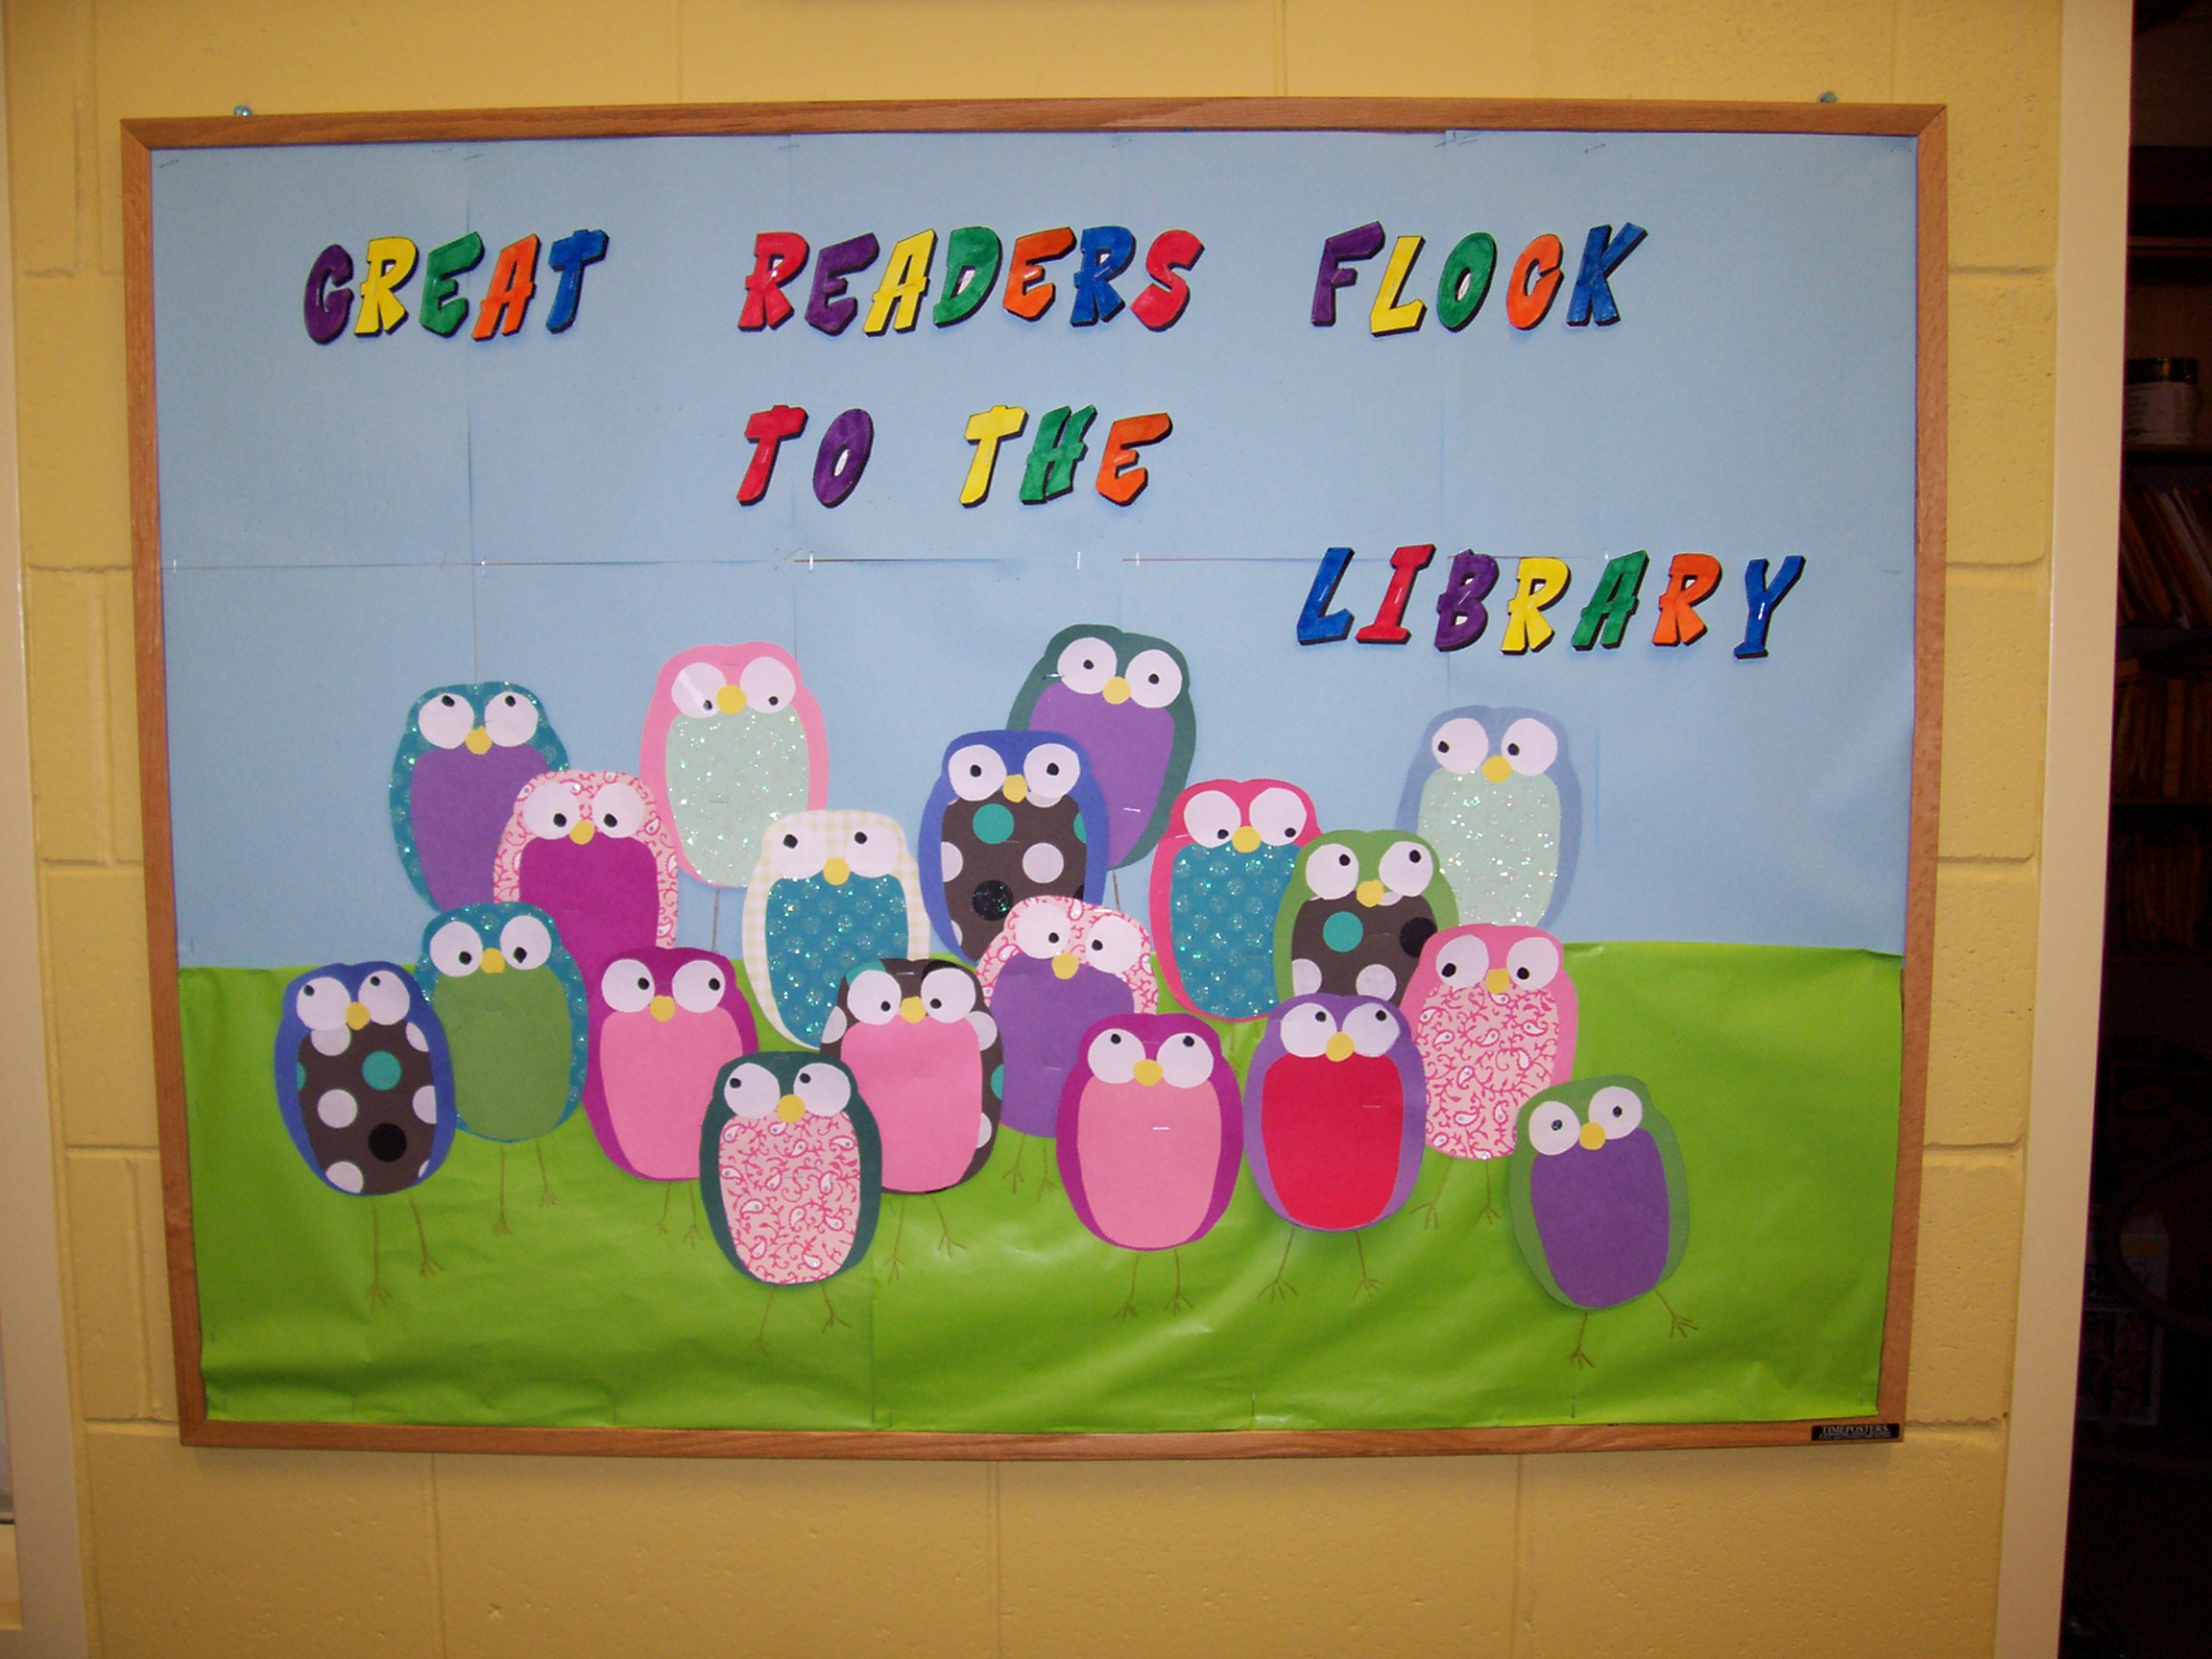 Bulletin board ideas for the month of july - Picture 171